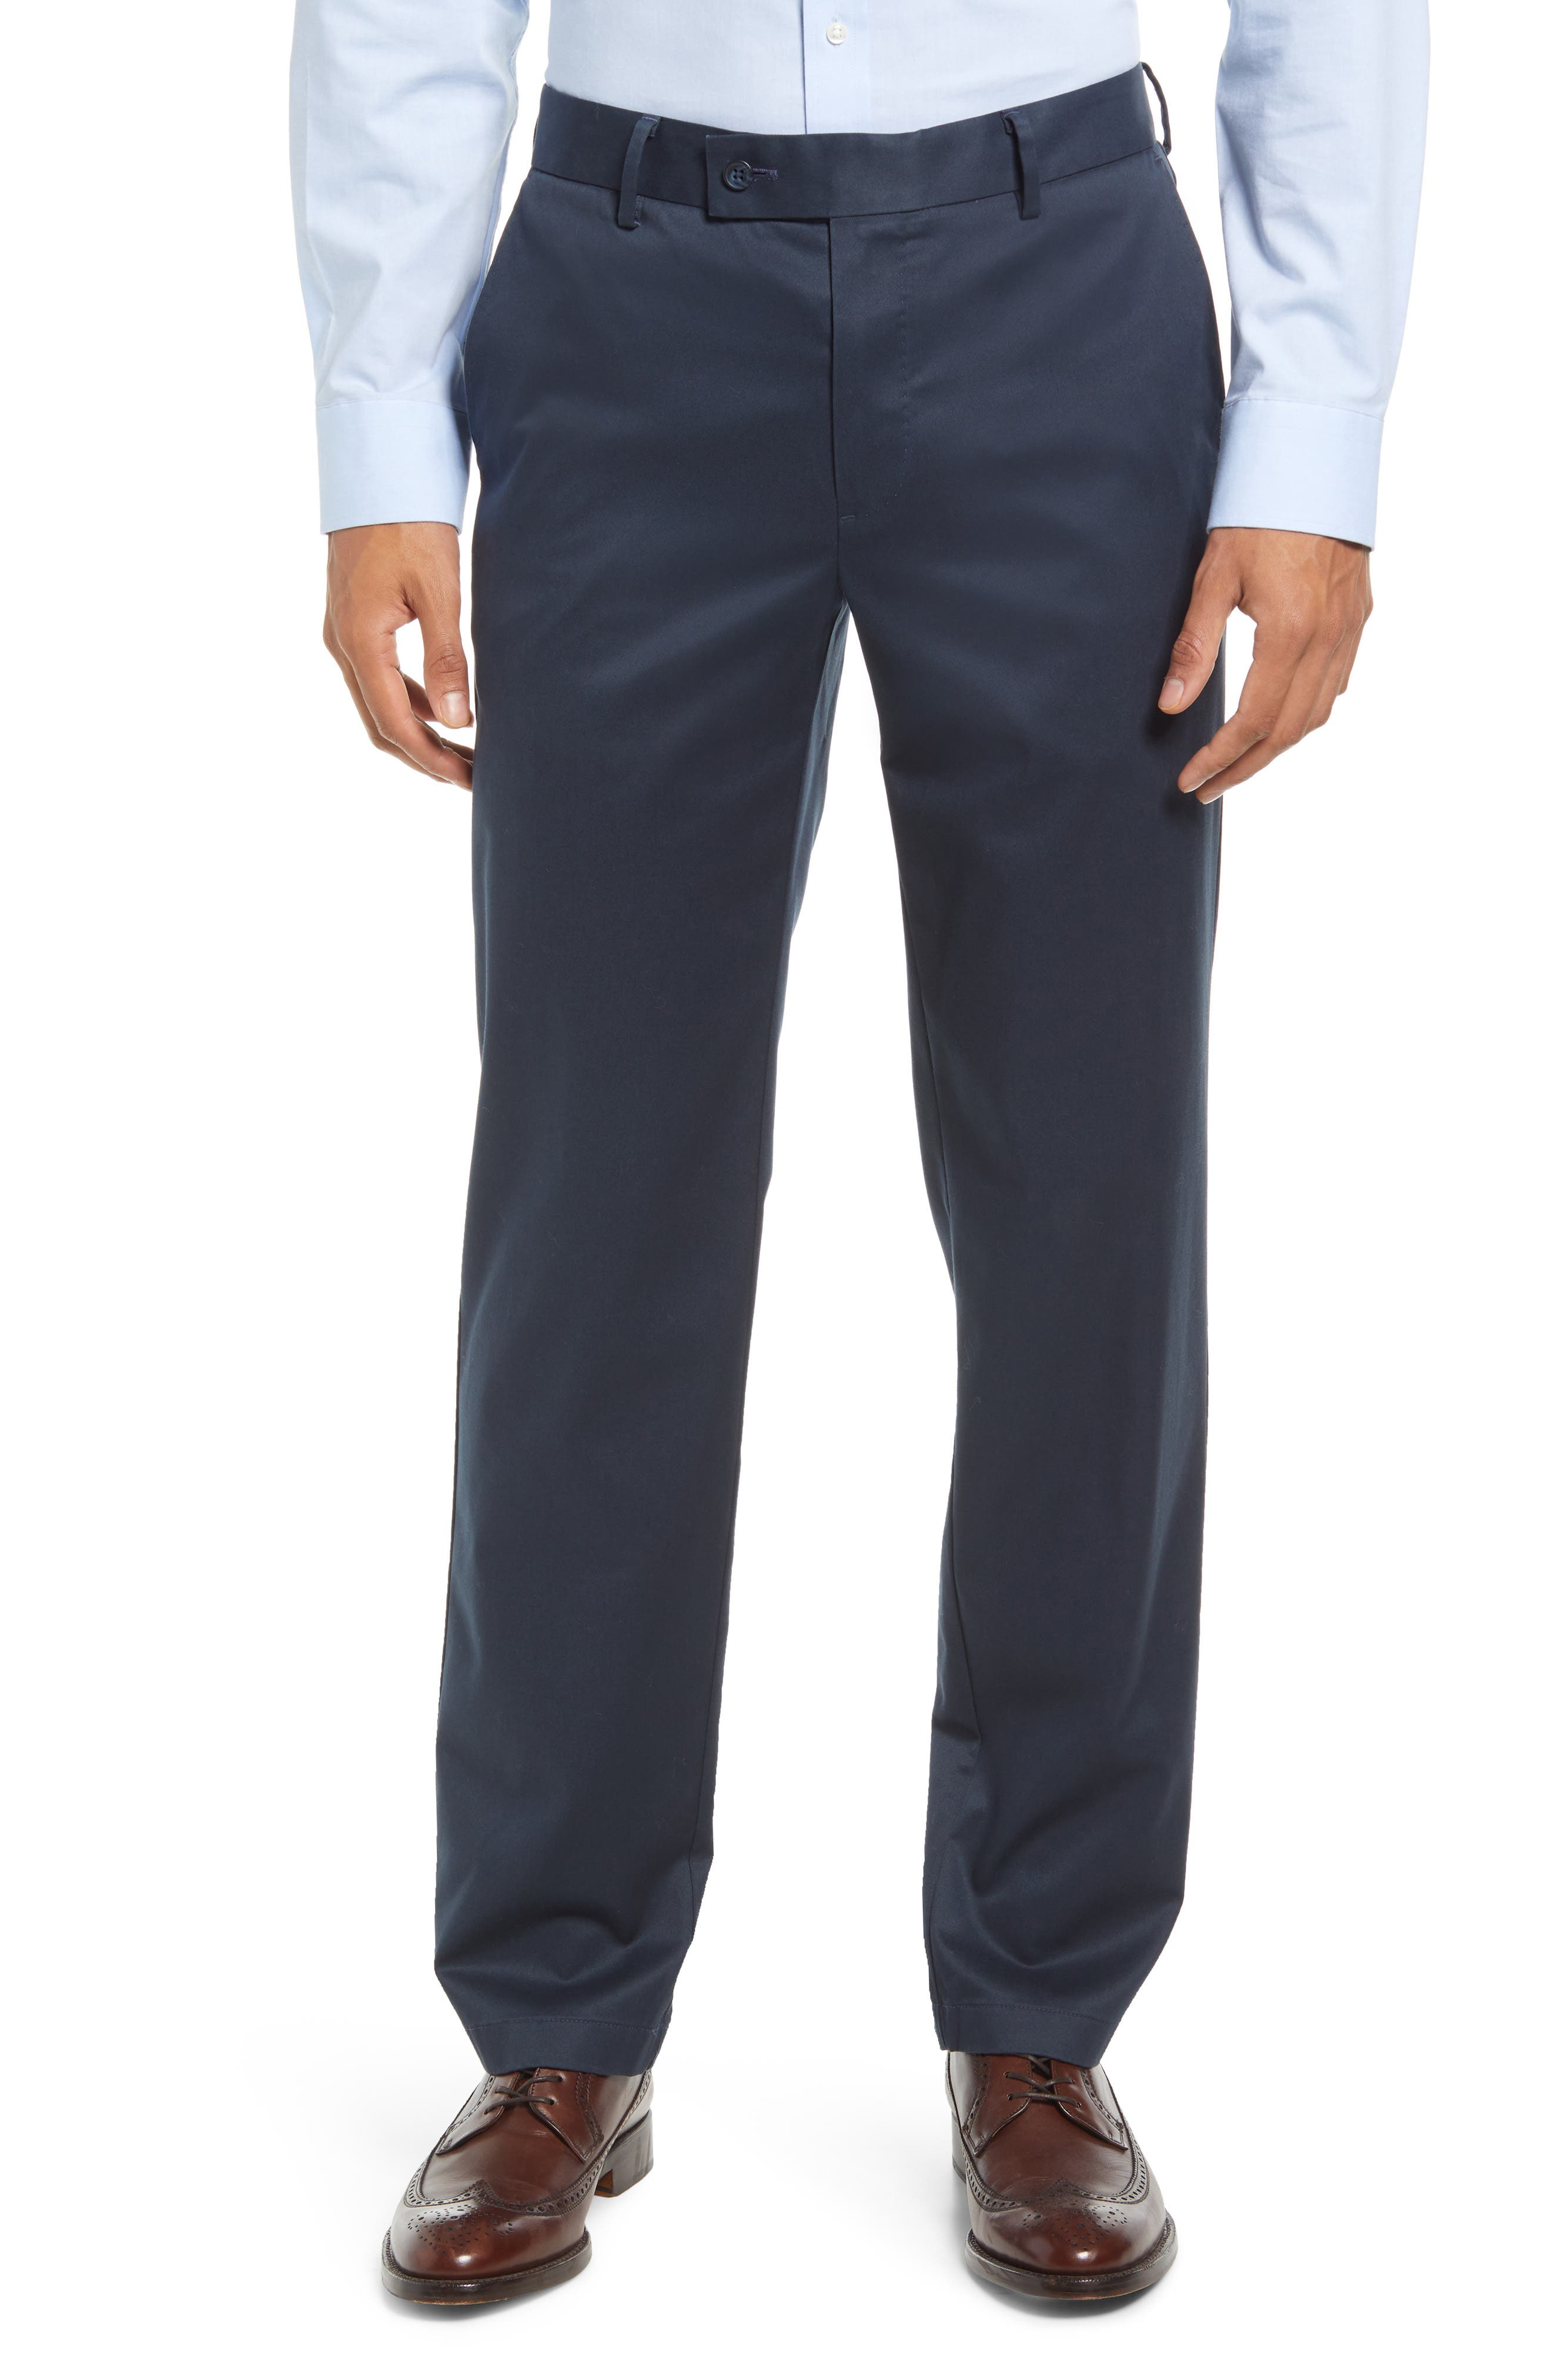 Men's All-Day Stretch Chino Pants